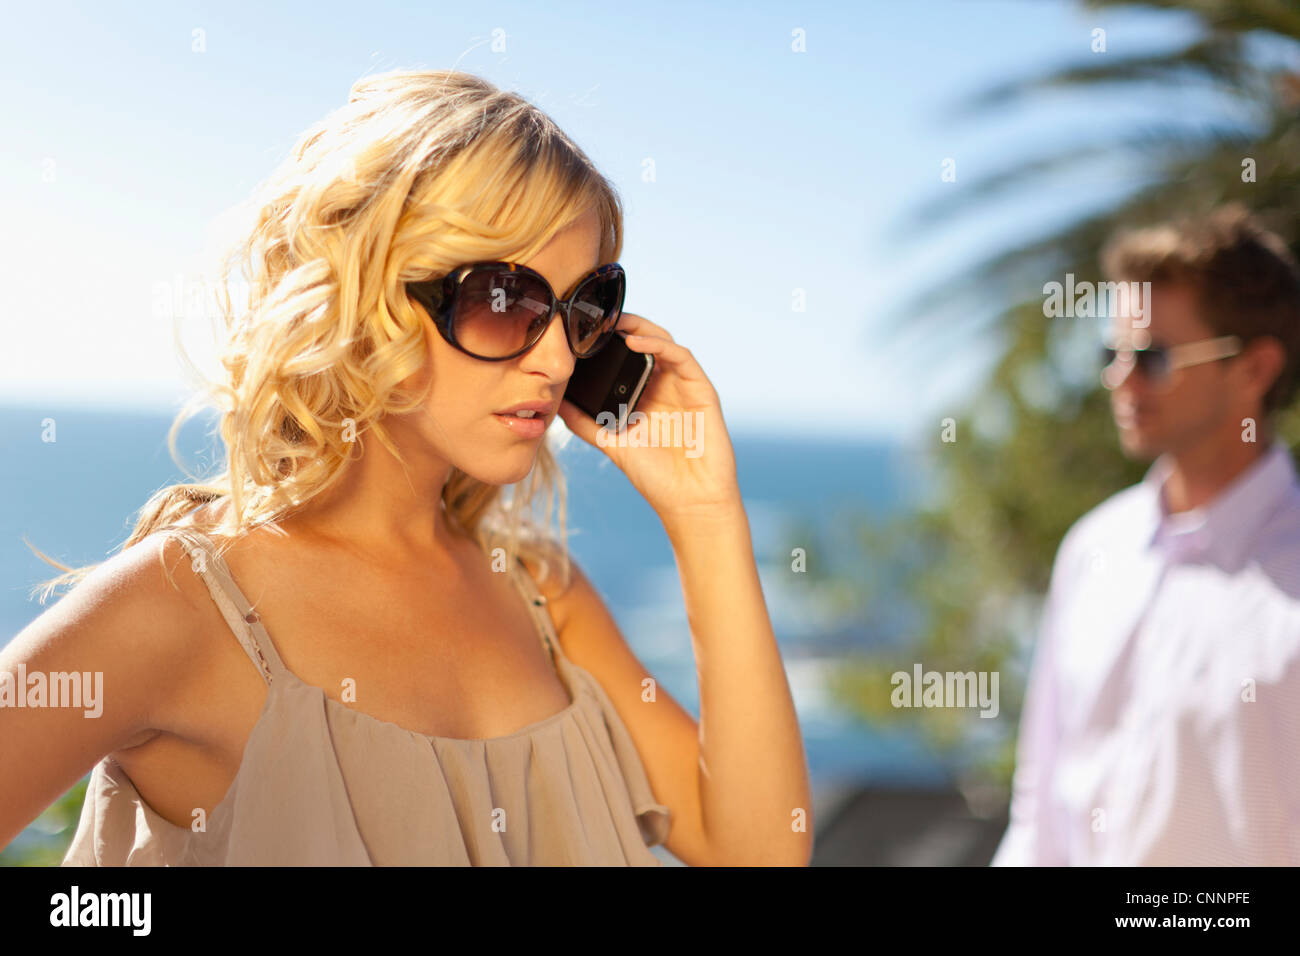 Woman ignoring boyfriend for cell phone - Stock Image